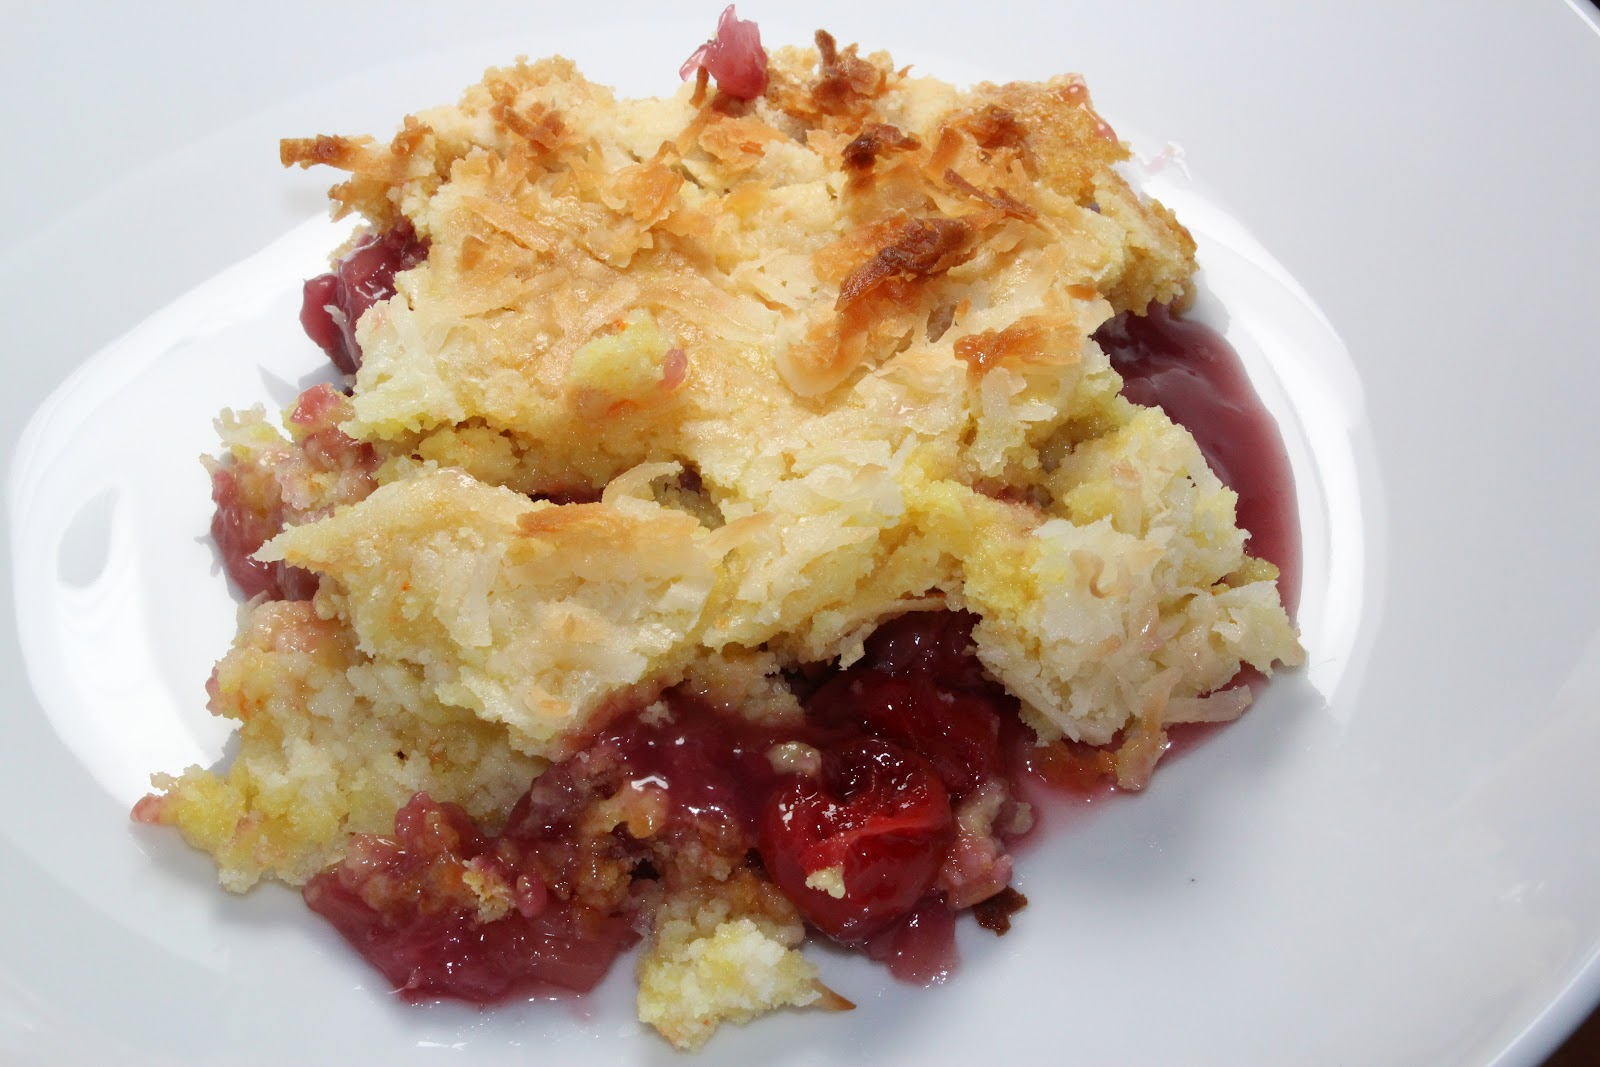 pineapple dump cake s tasty creations cherry pineapple dump cake 6541